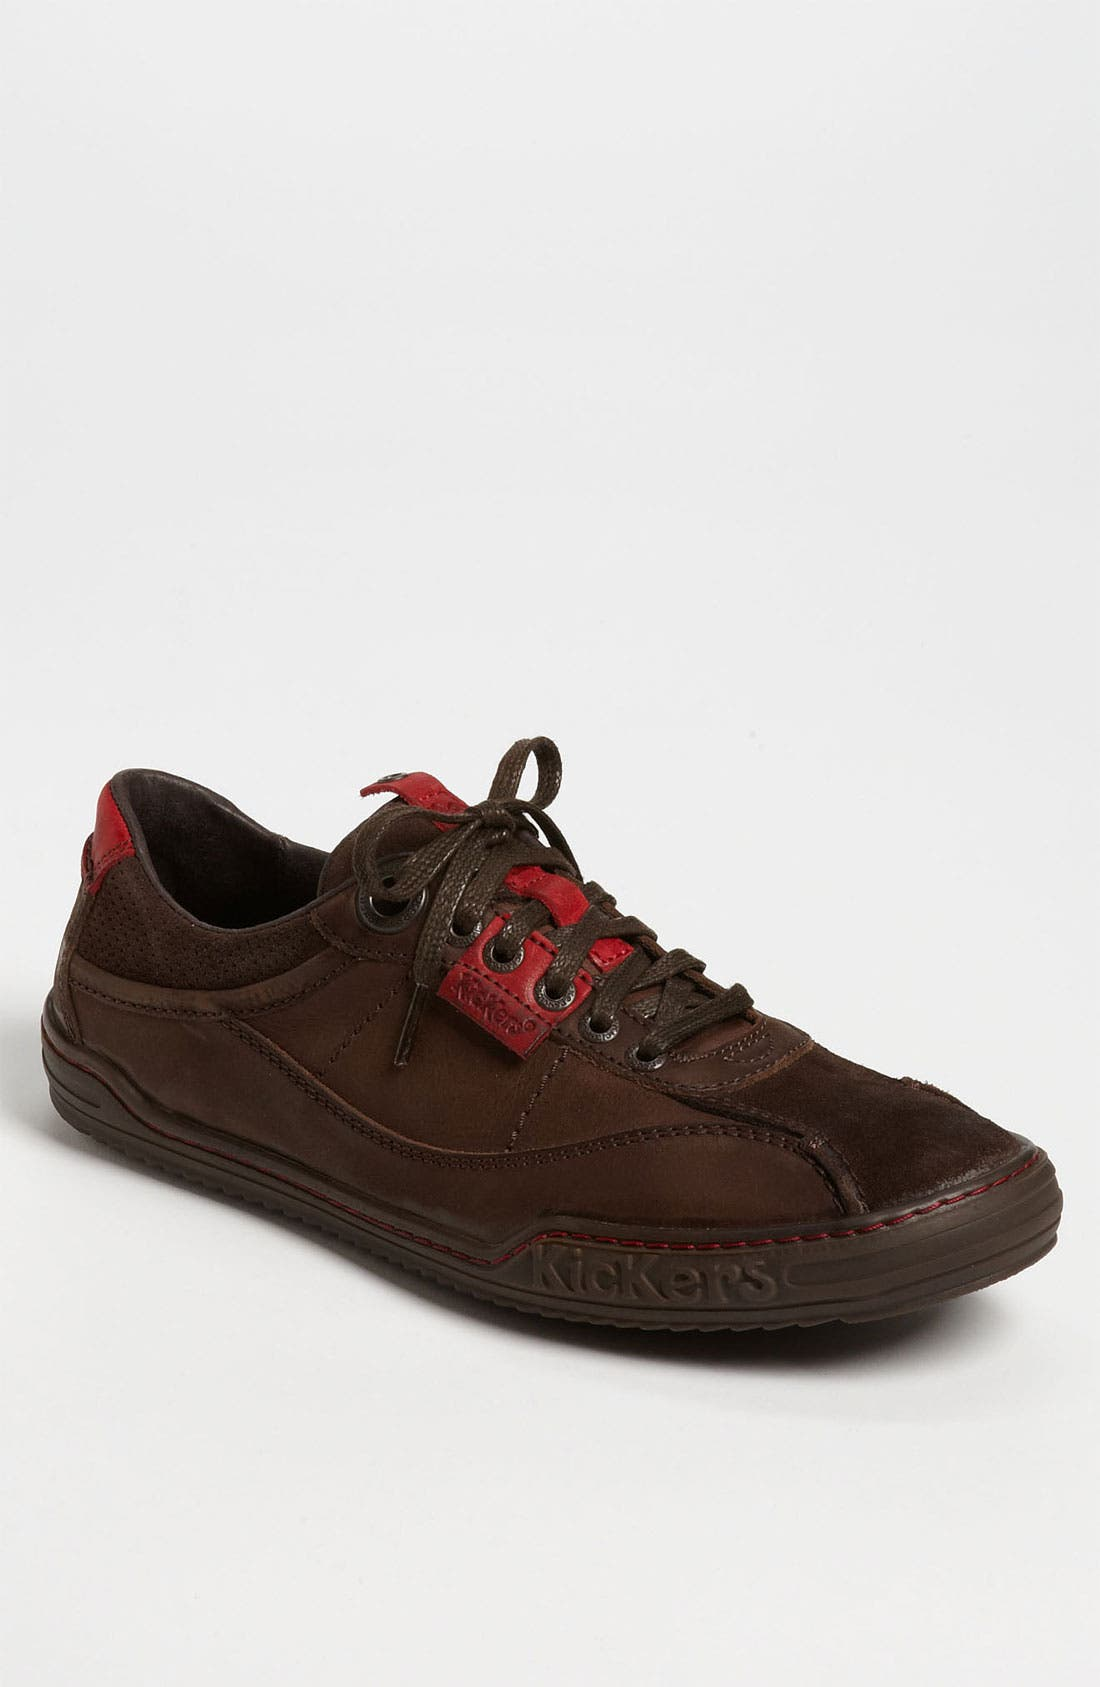 Alternate Image 1 Selected - Kickers 'Jinial' Sneaker